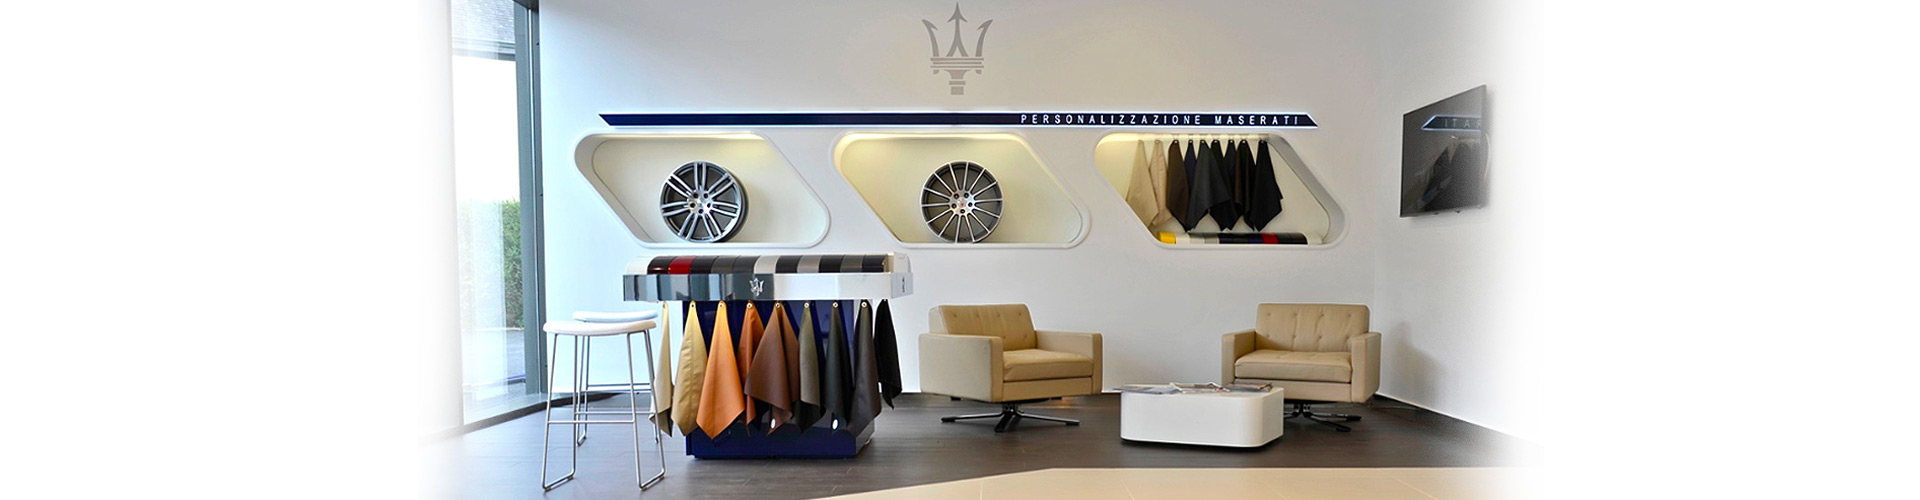 showroom maserati rennes